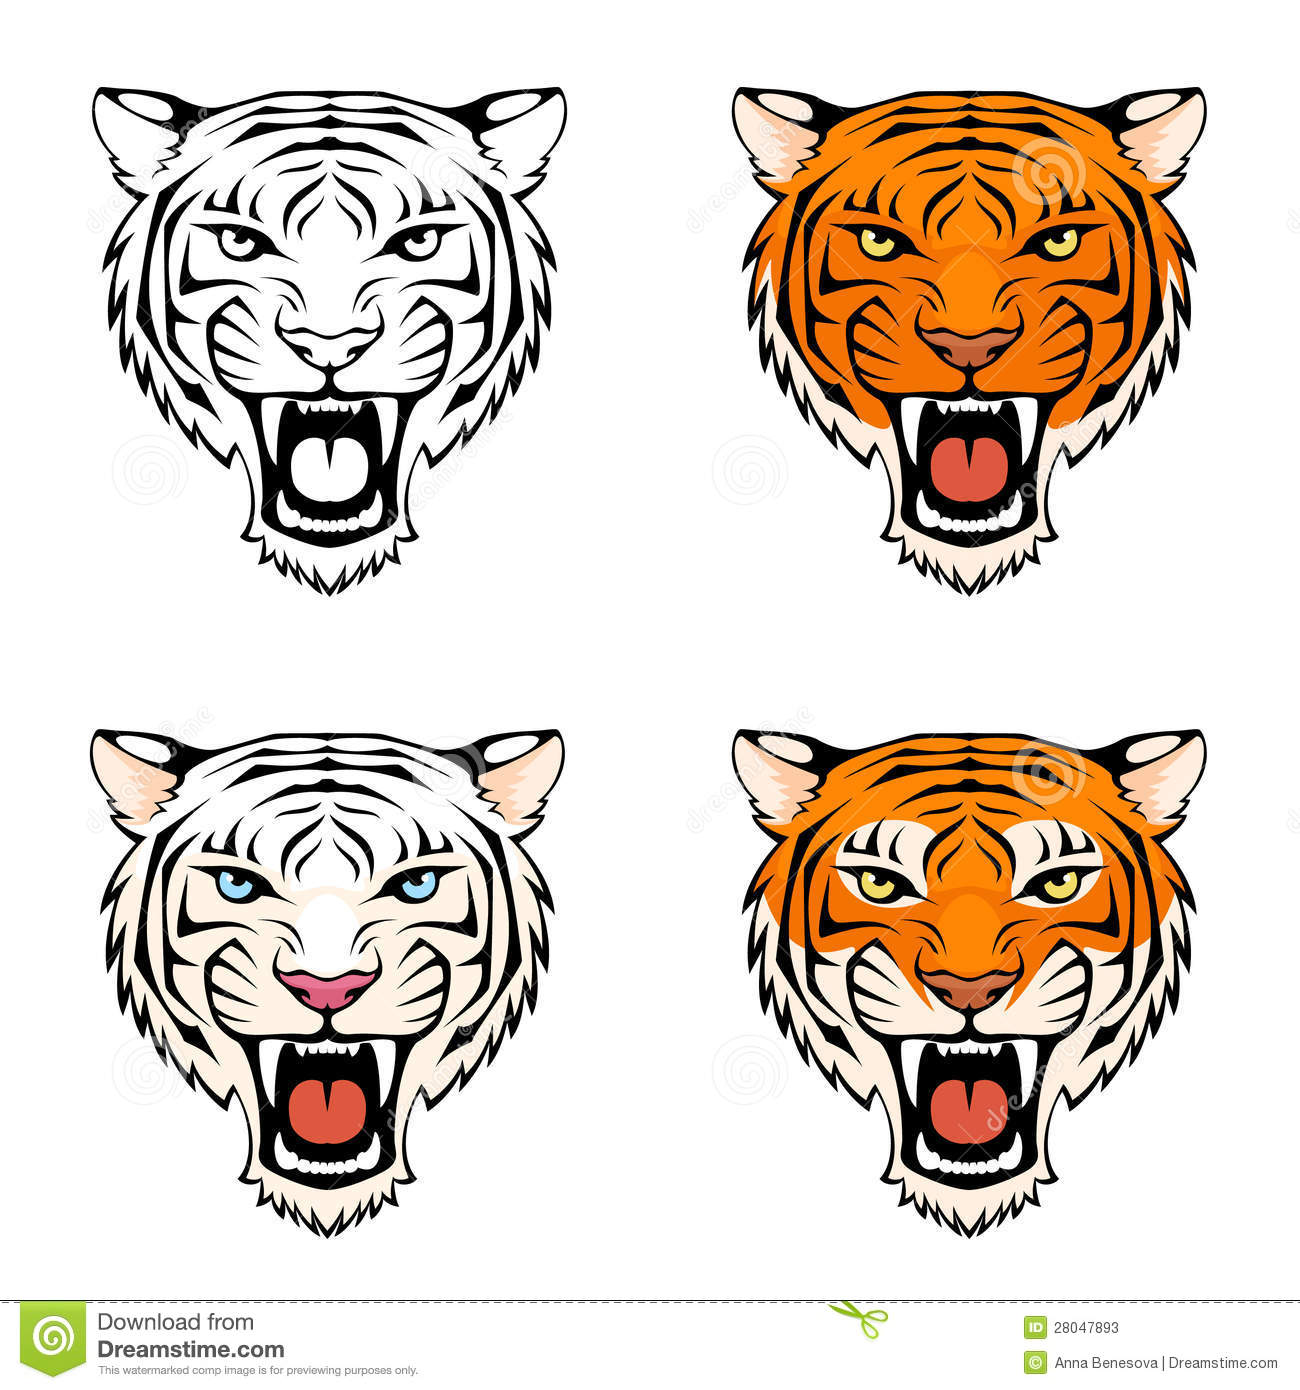 Stock Photos Illustration Of A Roaring Tiger Head Image